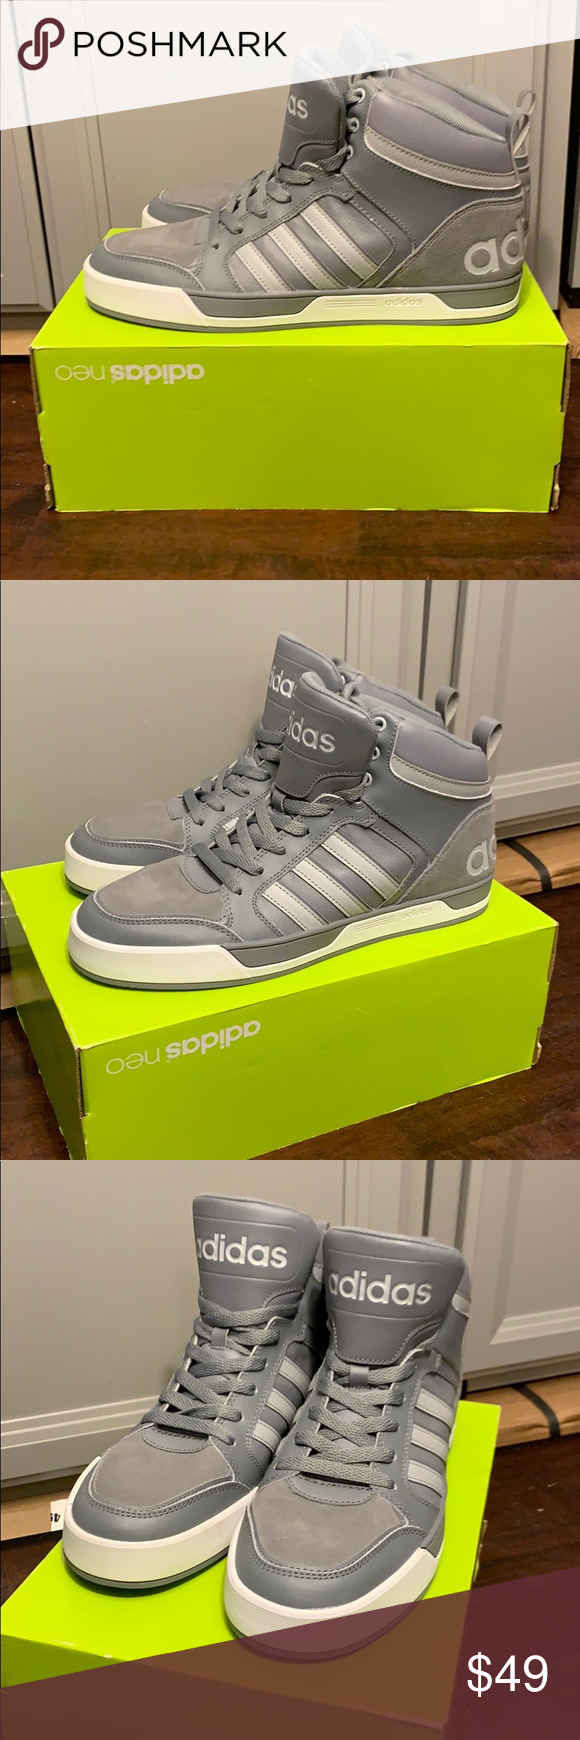 lavar Acercarse Intuición  New NWT Adidas Raleigh 9TIS MTD High -Top Size 10 New Adidas Neo Raleigh  9TIS MTD Never Worn Men's size 10 adidas Shoes Sneakers in 2020 | Adidas,  Adidas neo, High tops